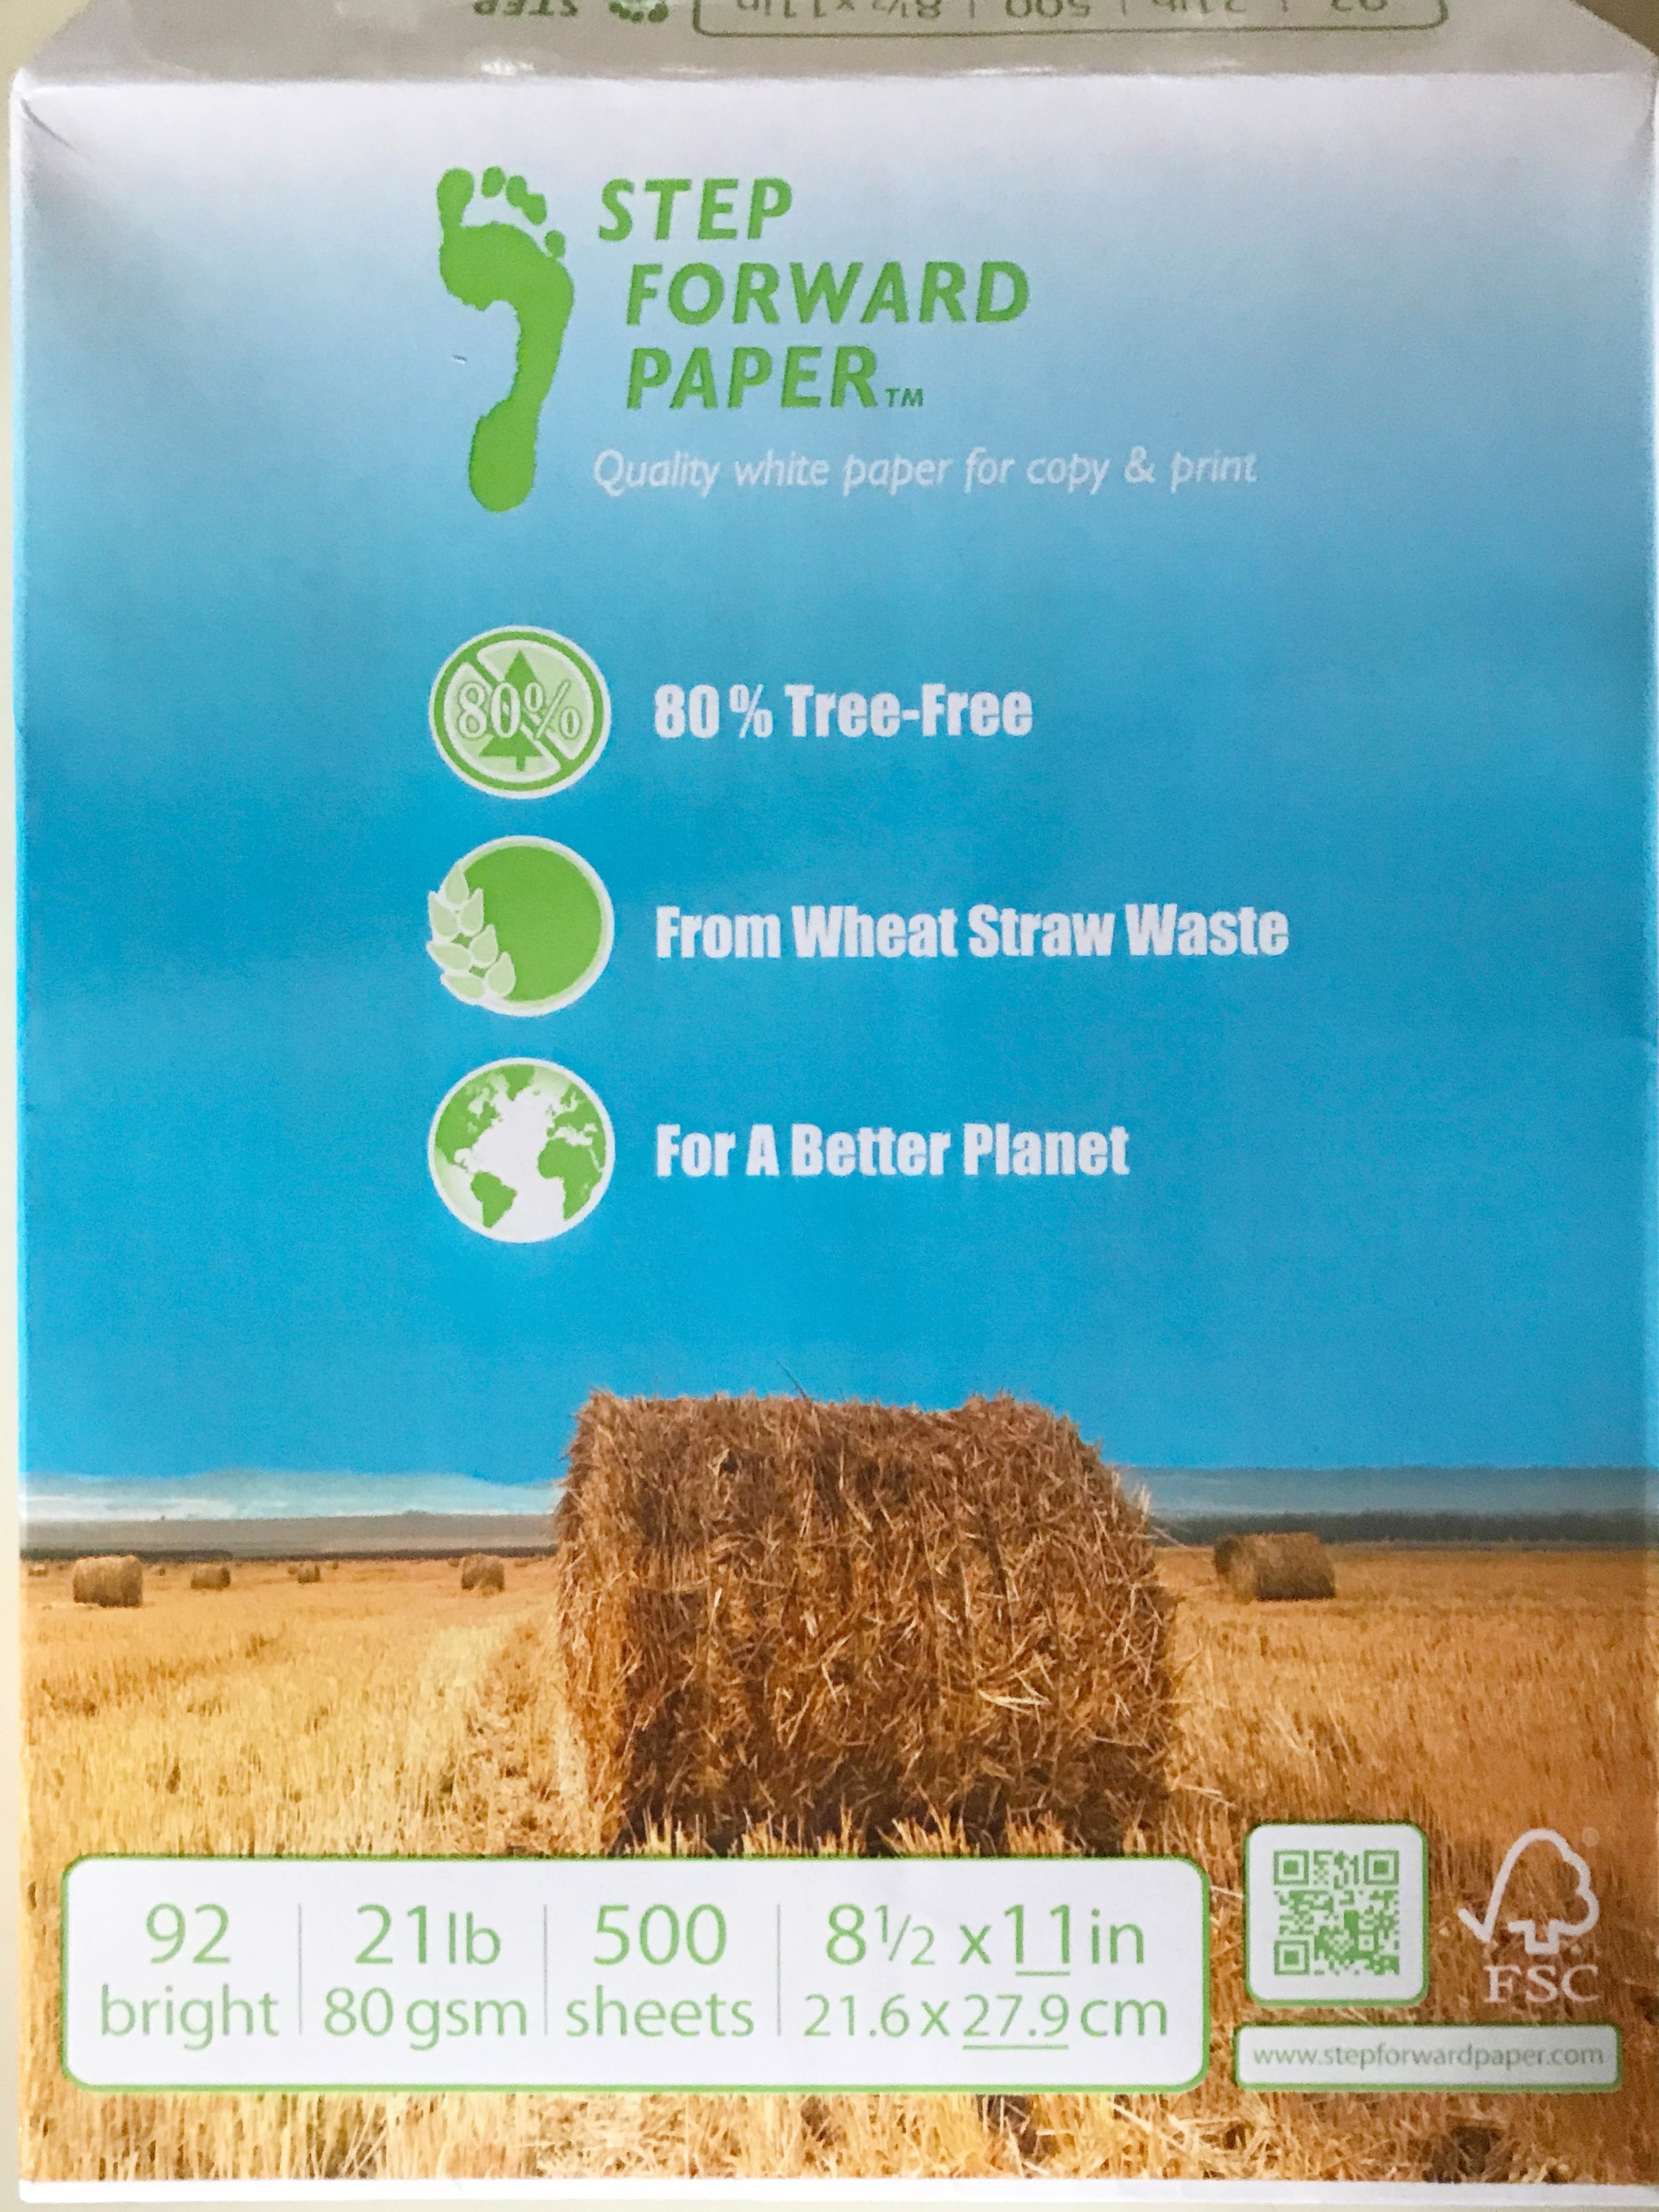 Step ForwardPaper: - This paper is only sold online by Staples. You can find it at here at staples.com.